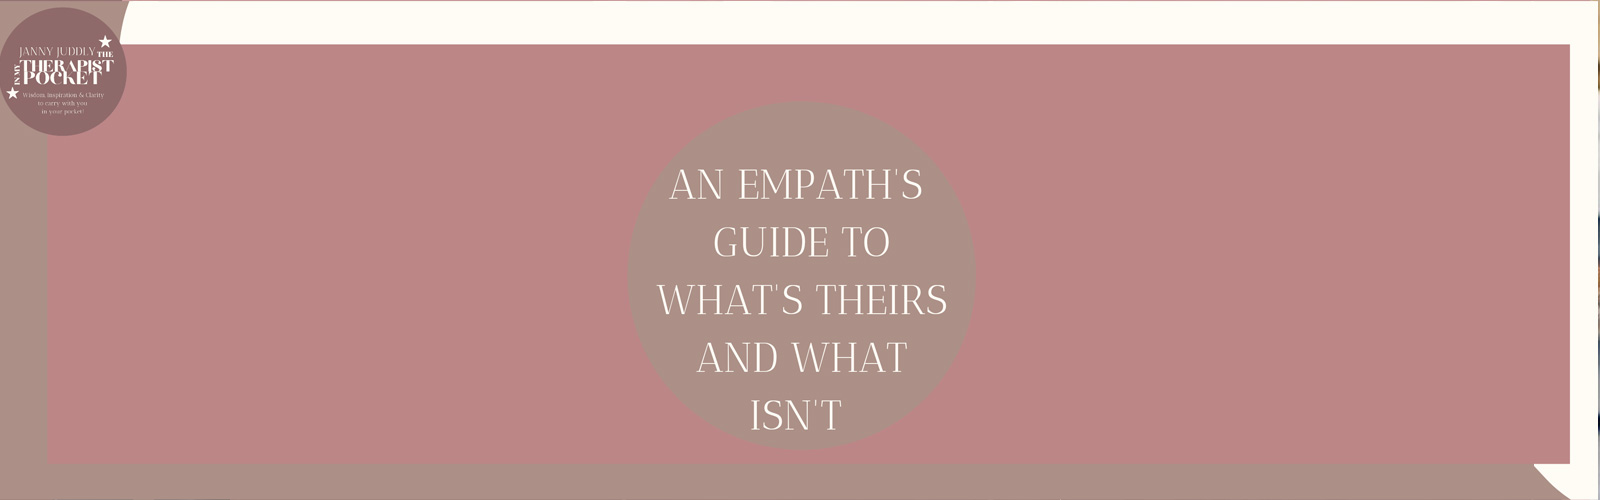 AN EMPATH'S DEFINITIVE GUIDE TO WHAT'S THEIRS AND WHAT ISN'T